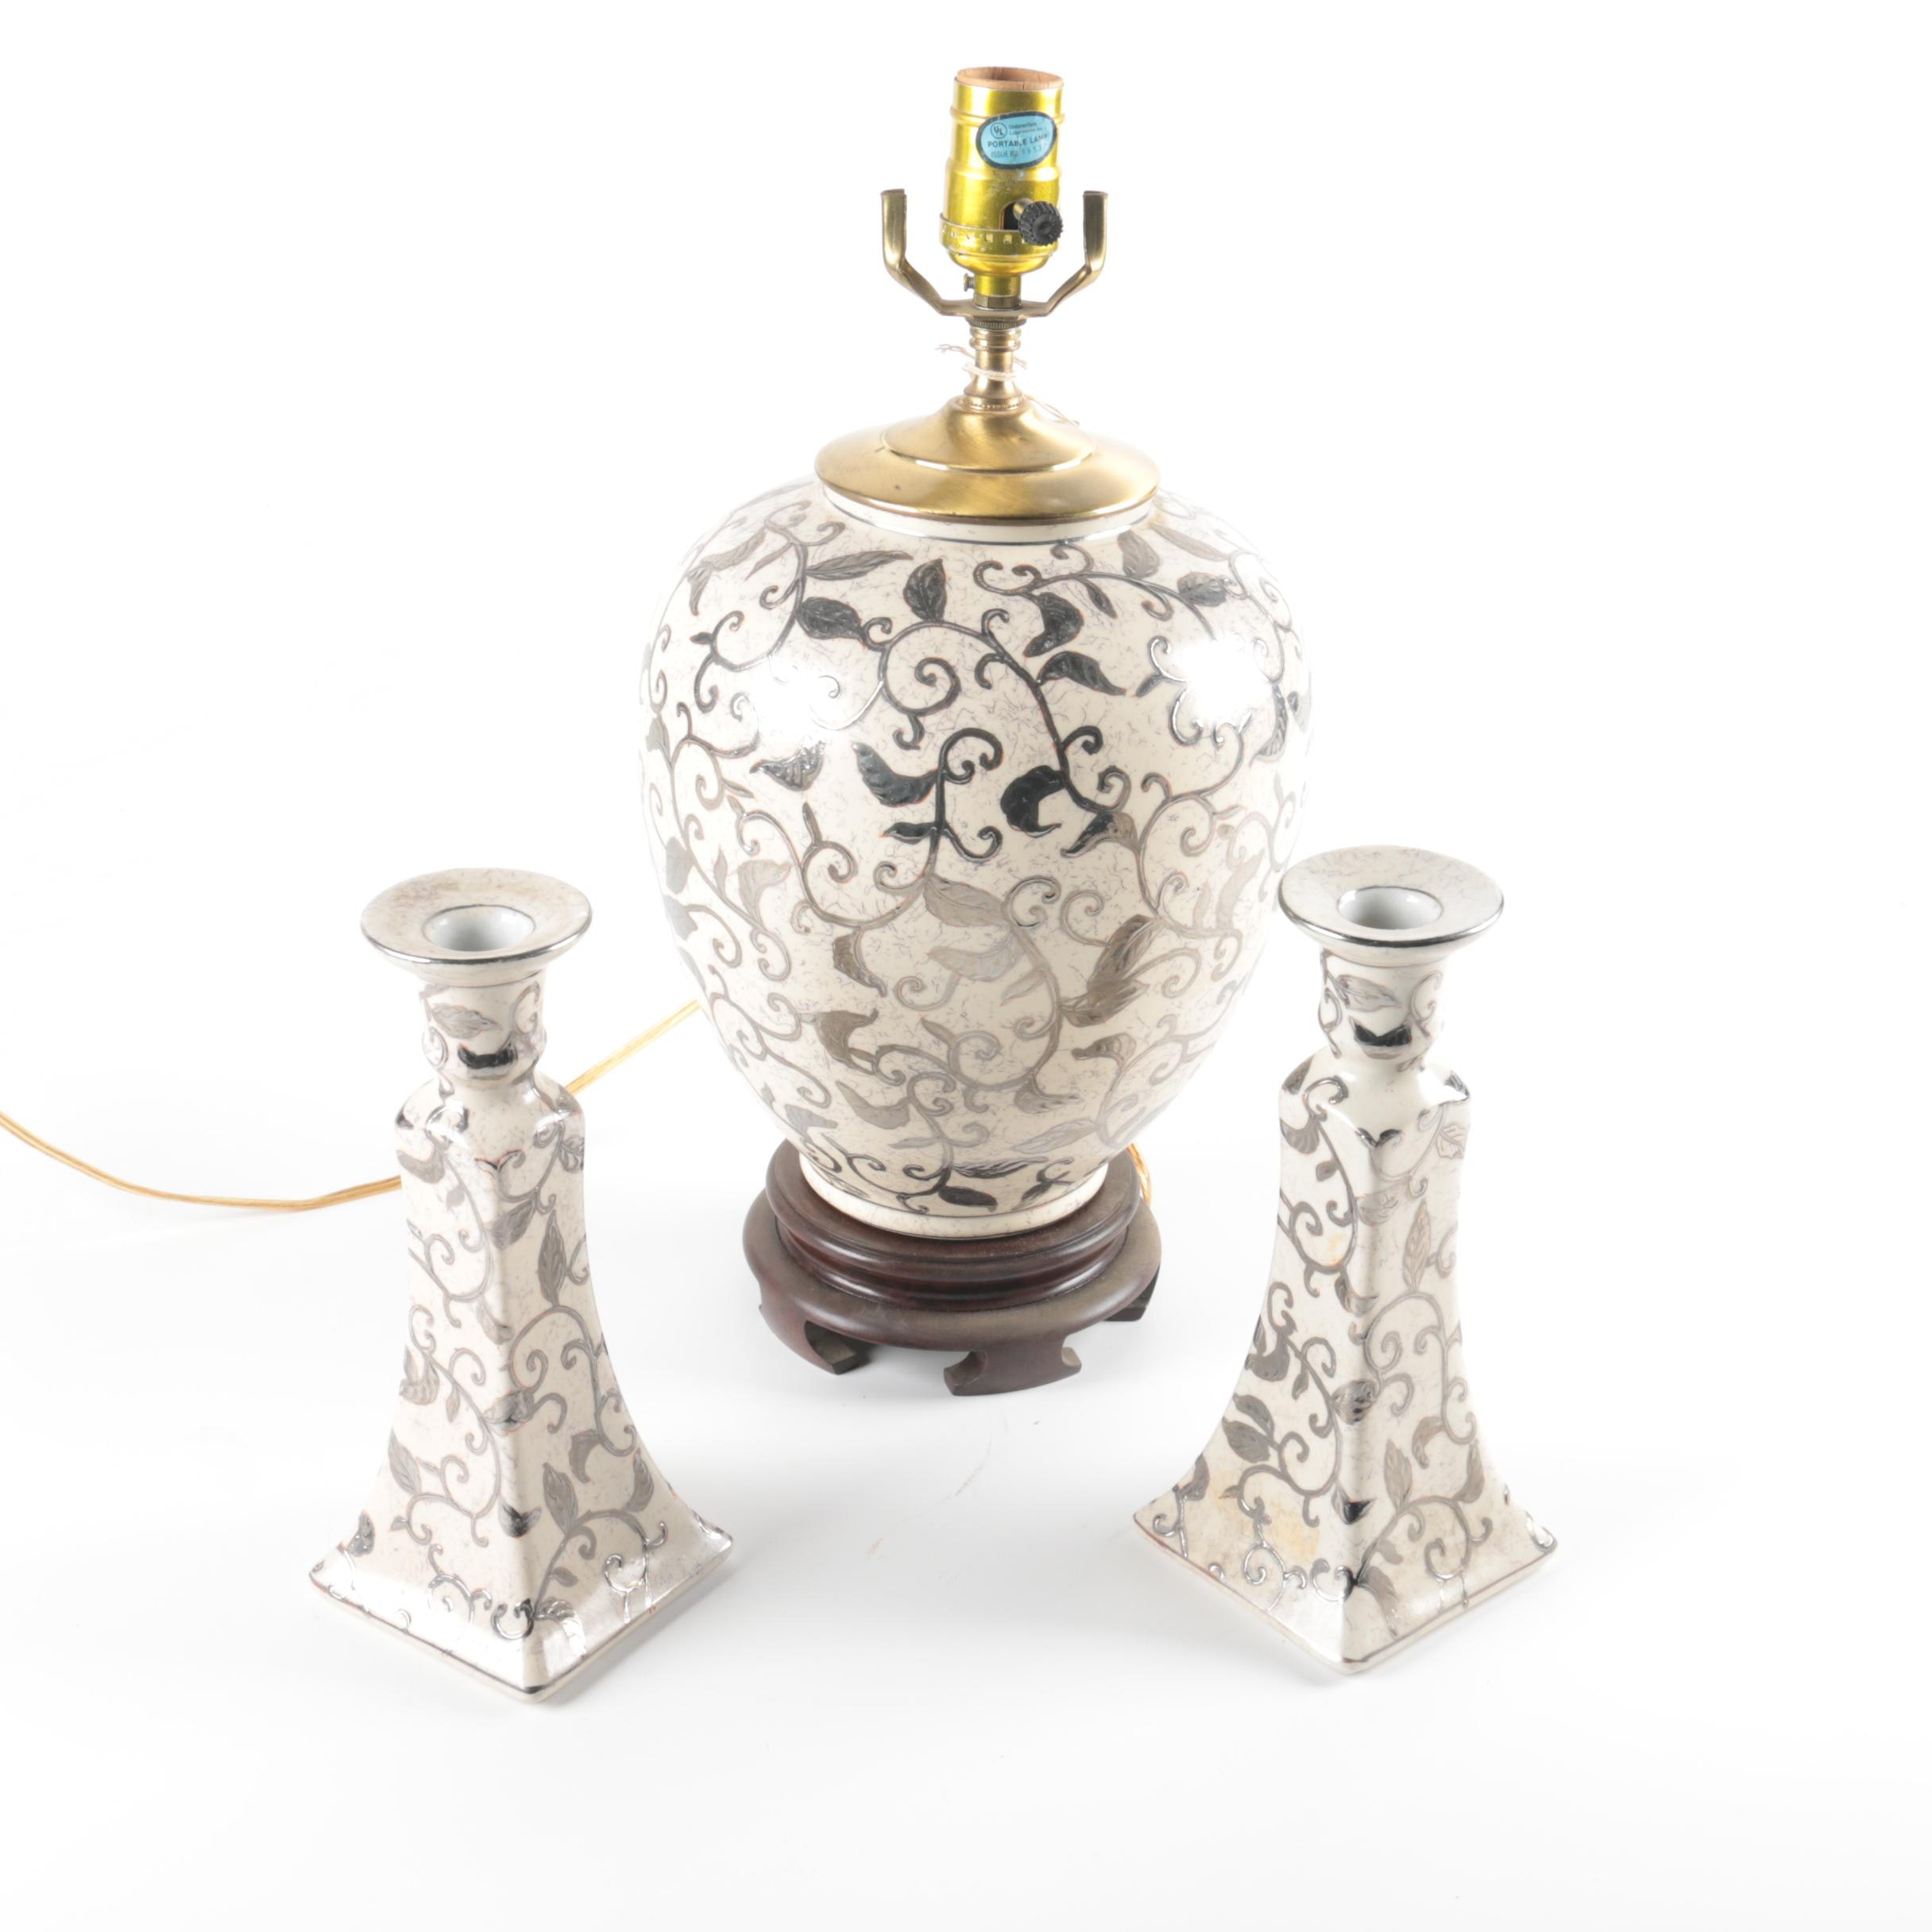 Asian Inspired Black and White Table Lamp and Candle Holders